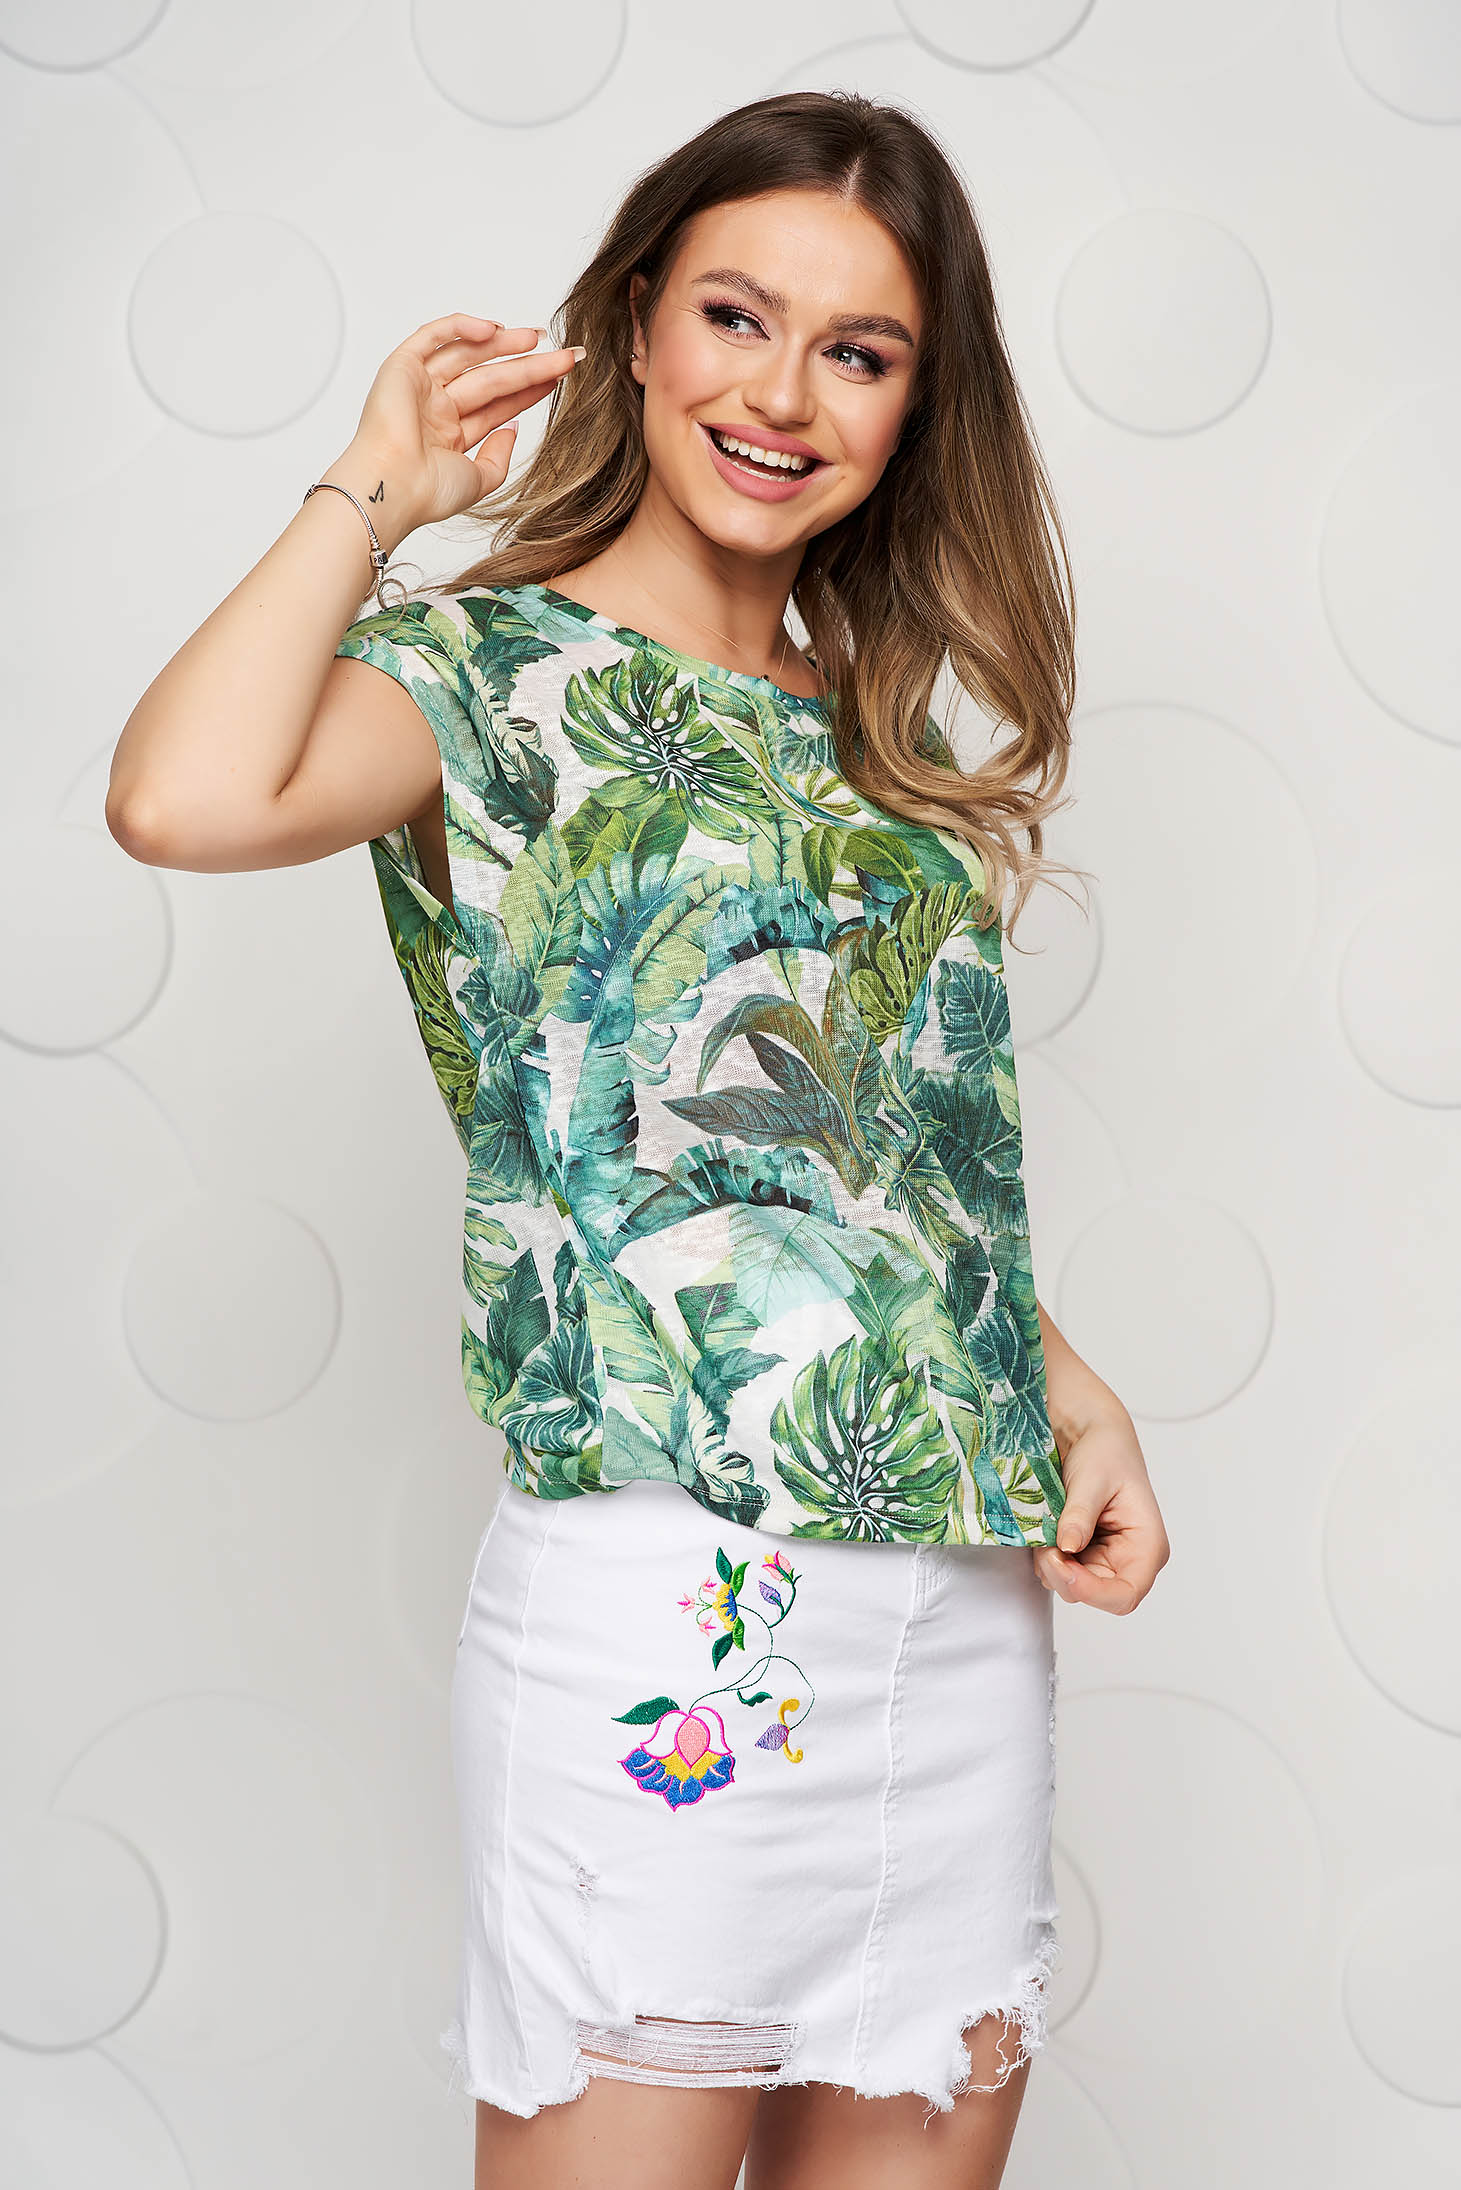 Green t-shirt with floral print casual with rounded cleavage